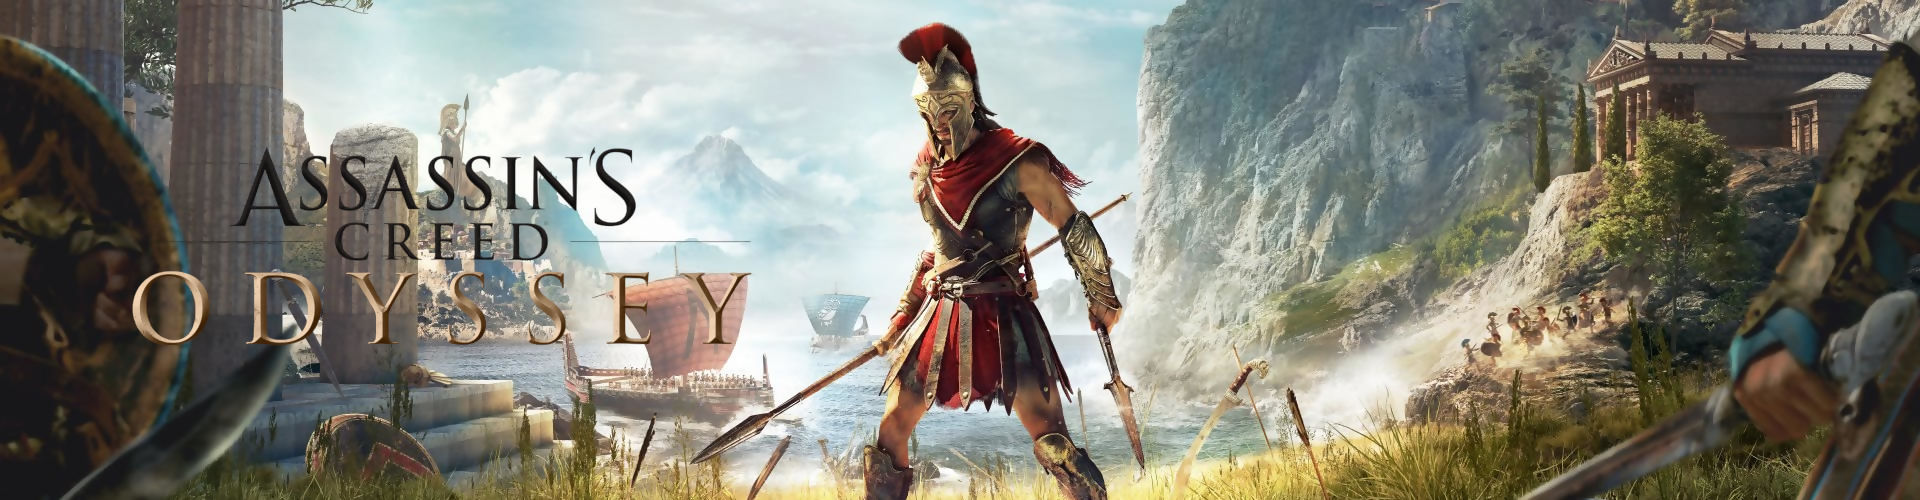 Check out all the Assassin's Creed Odyssey reviews